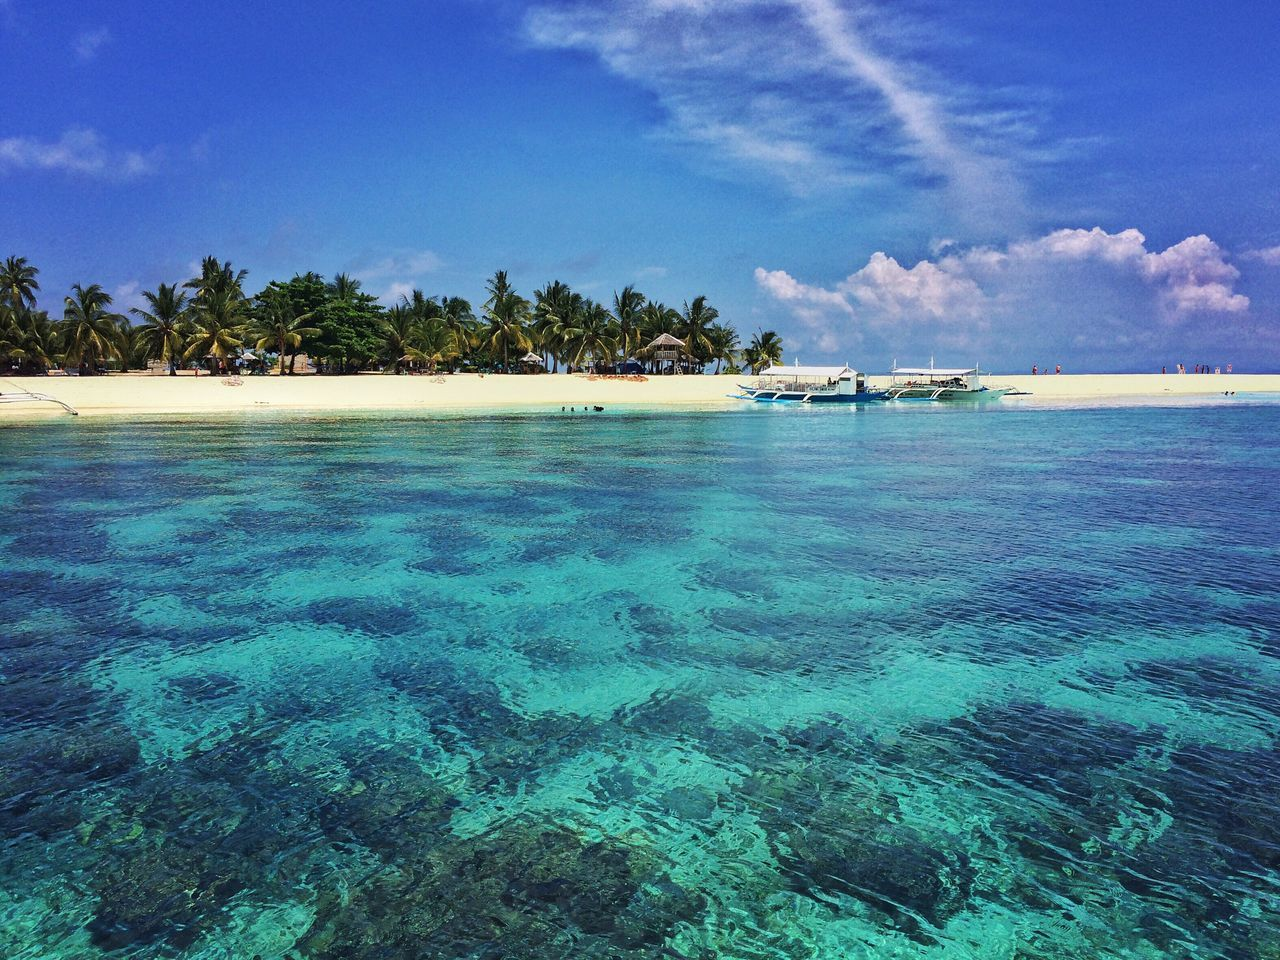 Philippines Travel Traveling Beach Islandlife Island View Seascape Beauty In Nature Blue Vacations Sea Beachside Clear Water Cebu Nature Getting Away From It All Chilling Relaxing Thalasophile Traveladdict Travel Photography White Sand Beach Beautiful Beachphotography